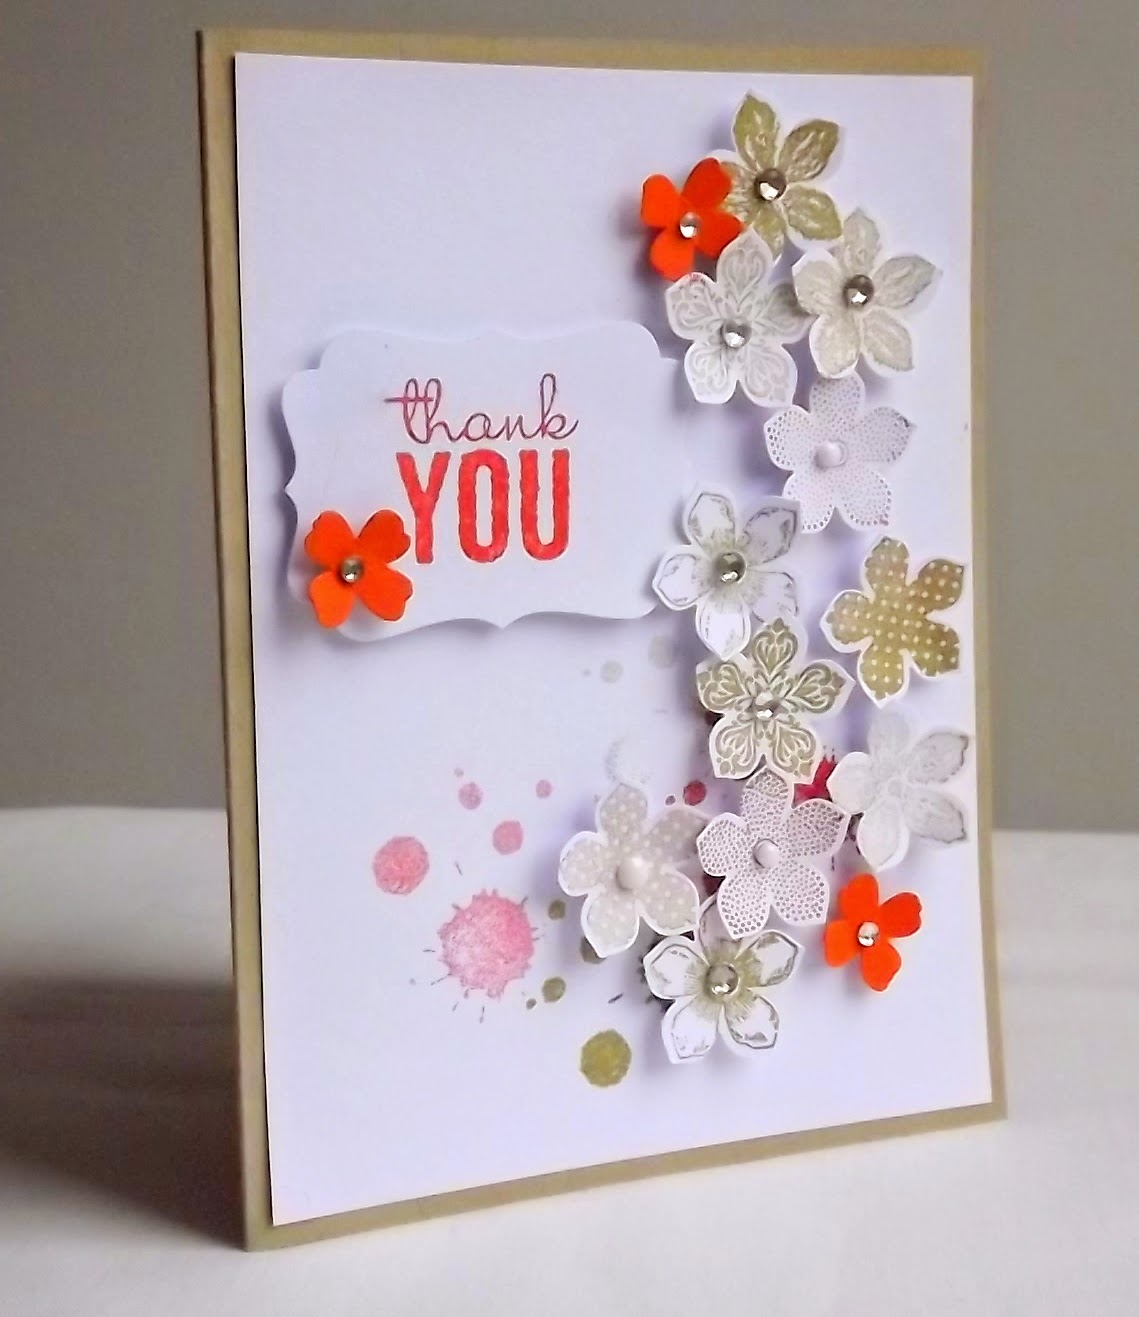 Stampin Up! Petite petals, crumb cake, itty bitty accents card